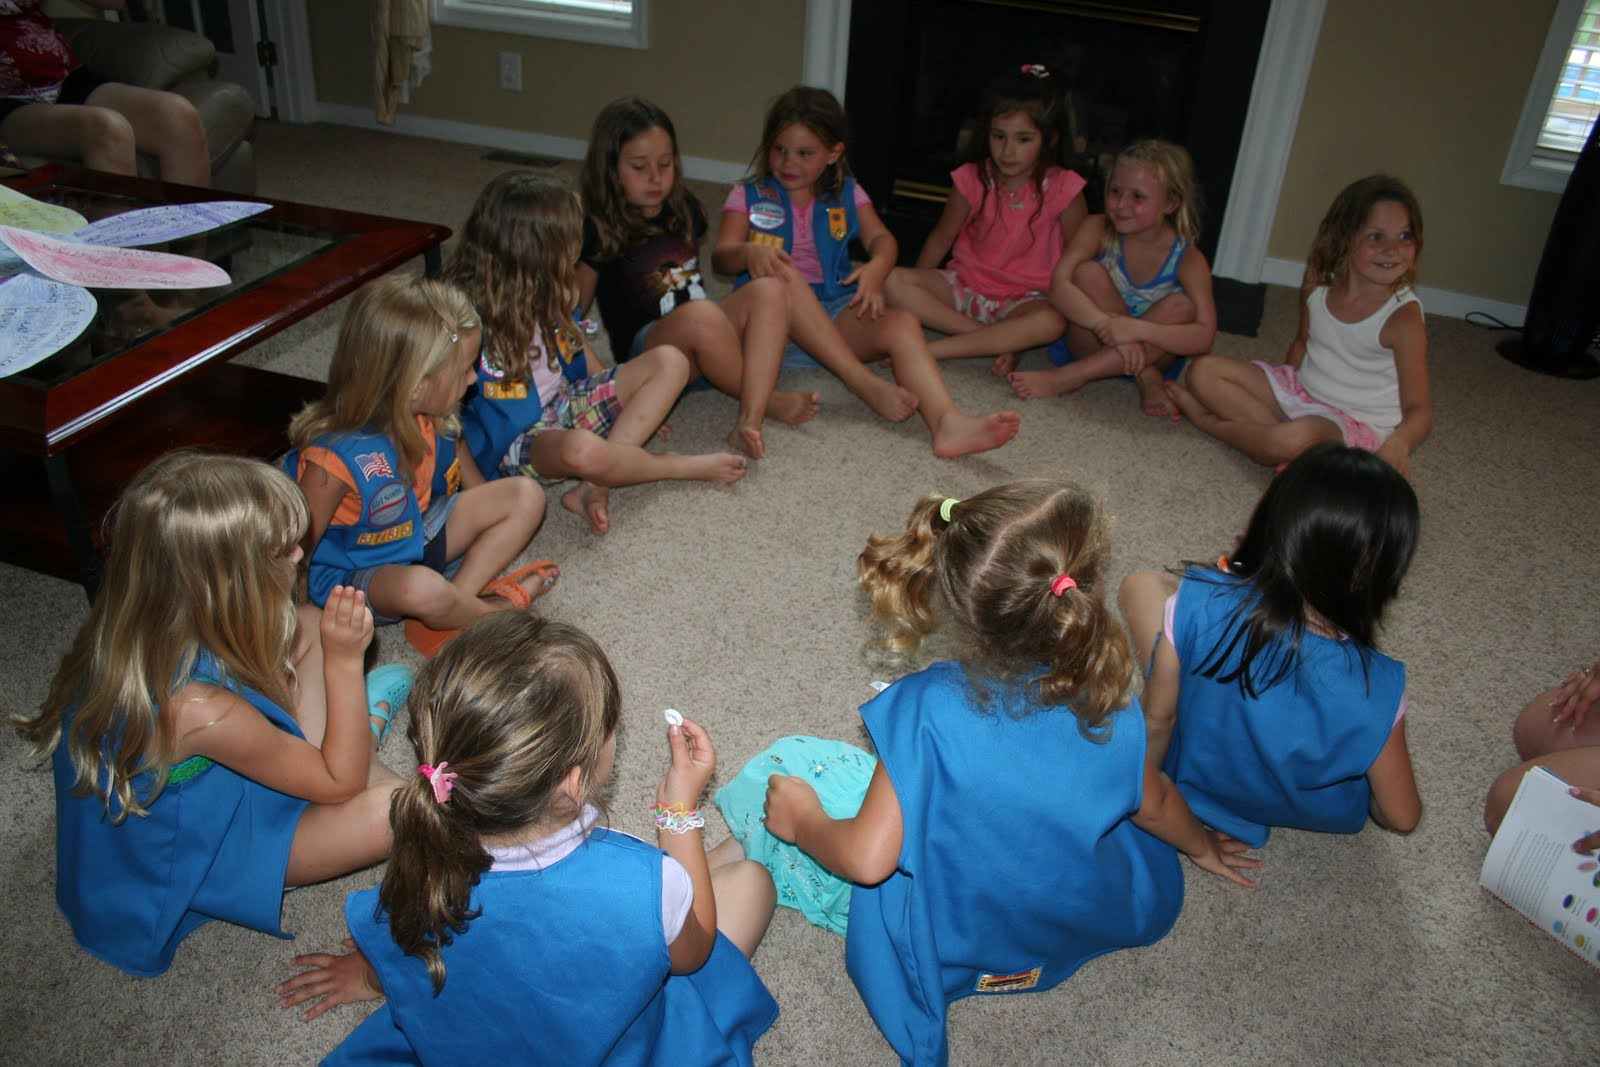 daisy girl scout meeting rules Four daisy girl scout meetings - epilog sys - rules and procedures 3 fri, 04 may 2018 18:23:00 gmt gto association of america concours judging standards - the.